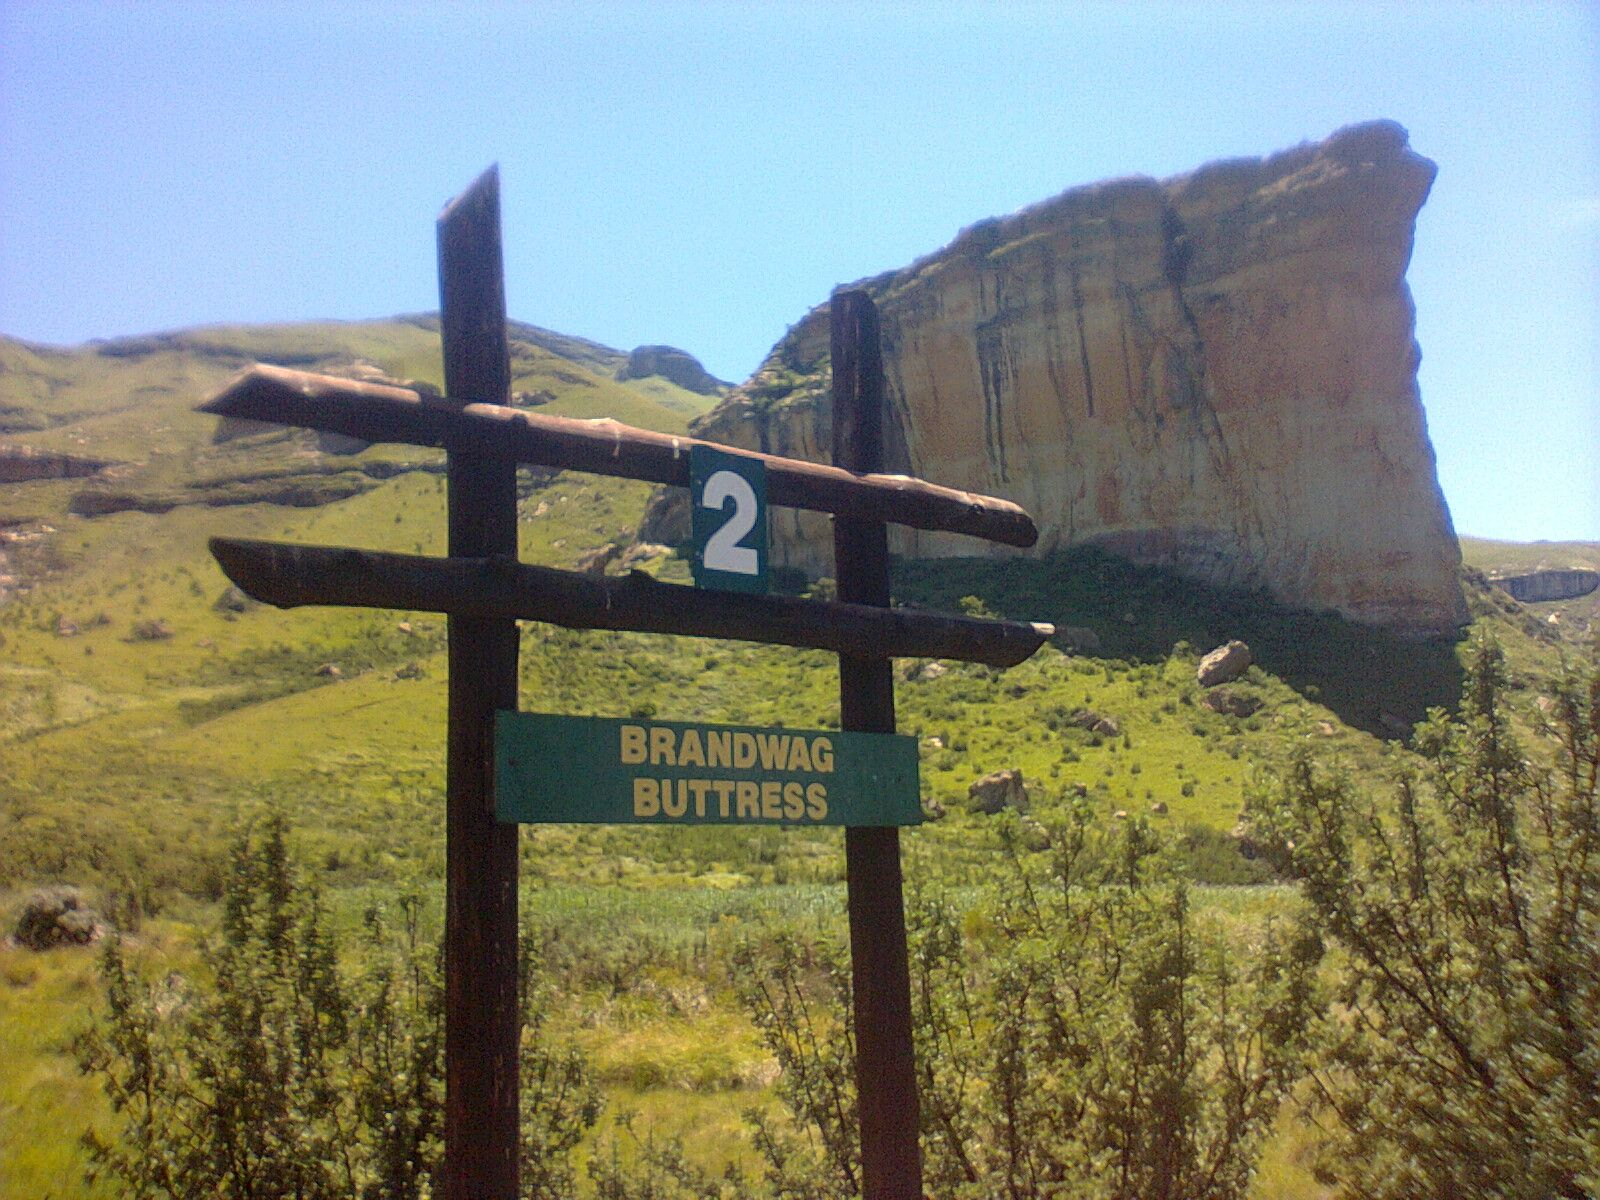 brandwag mountain trial at Golden gate nature reserve near Clarens in the Freestate, SA